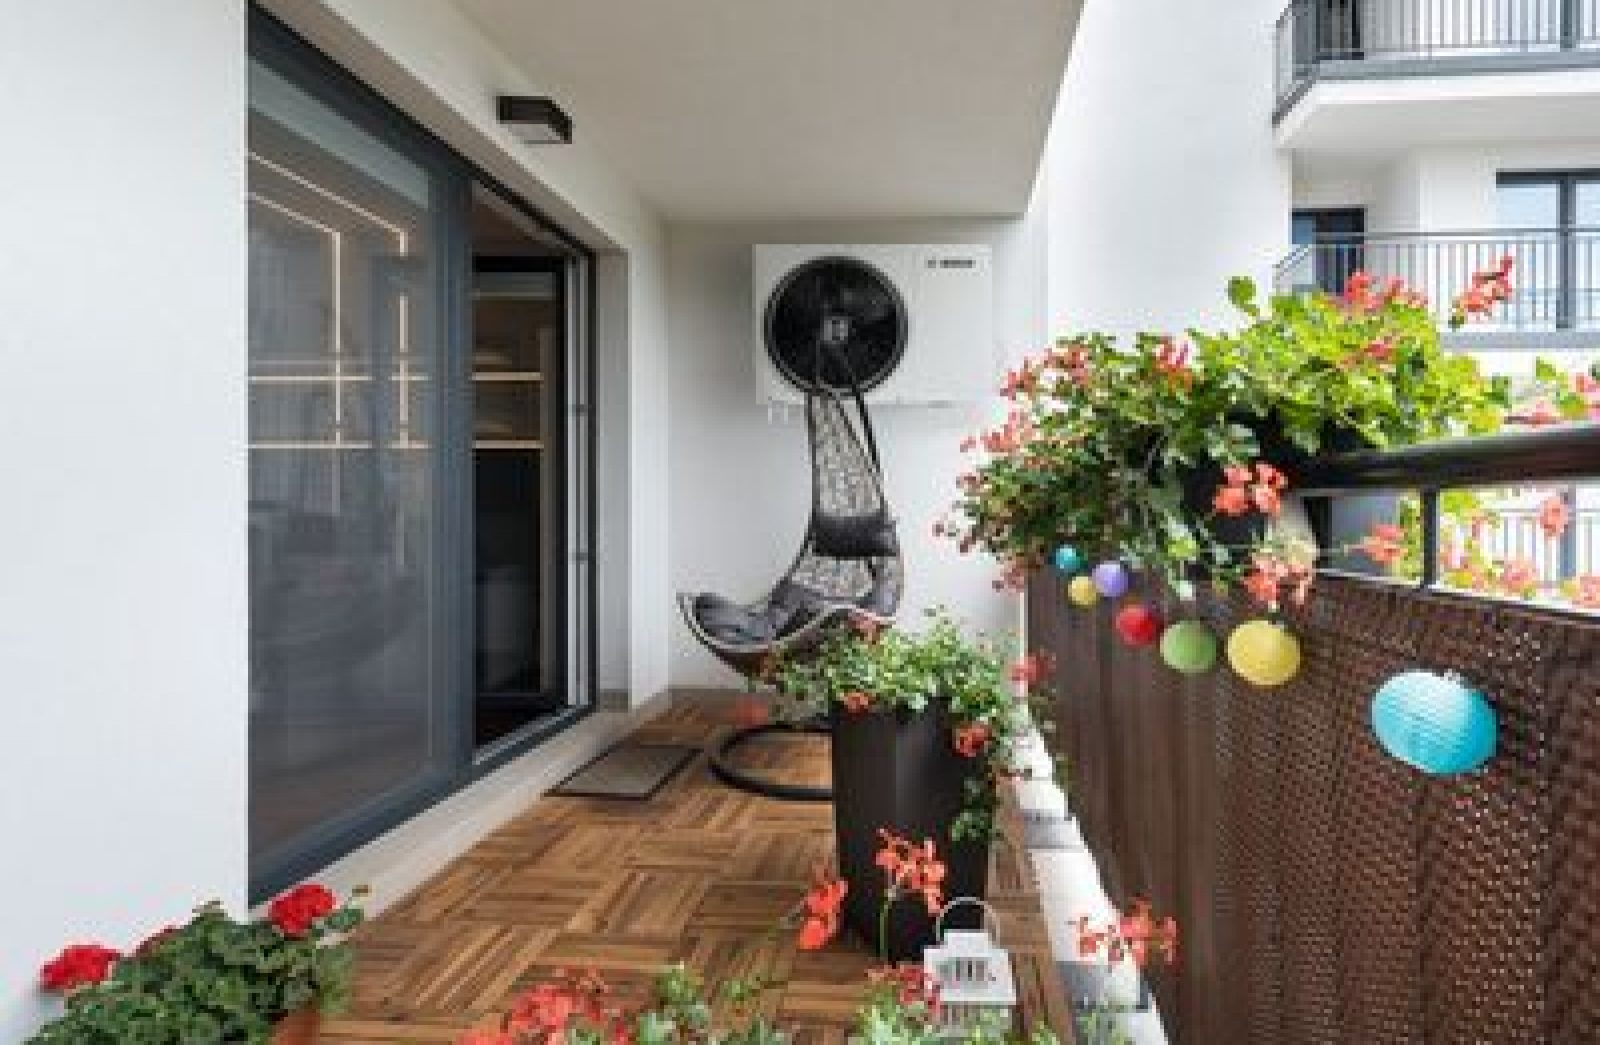 Home terrace with wooden floor and chair; Shutterstock ID 675585040